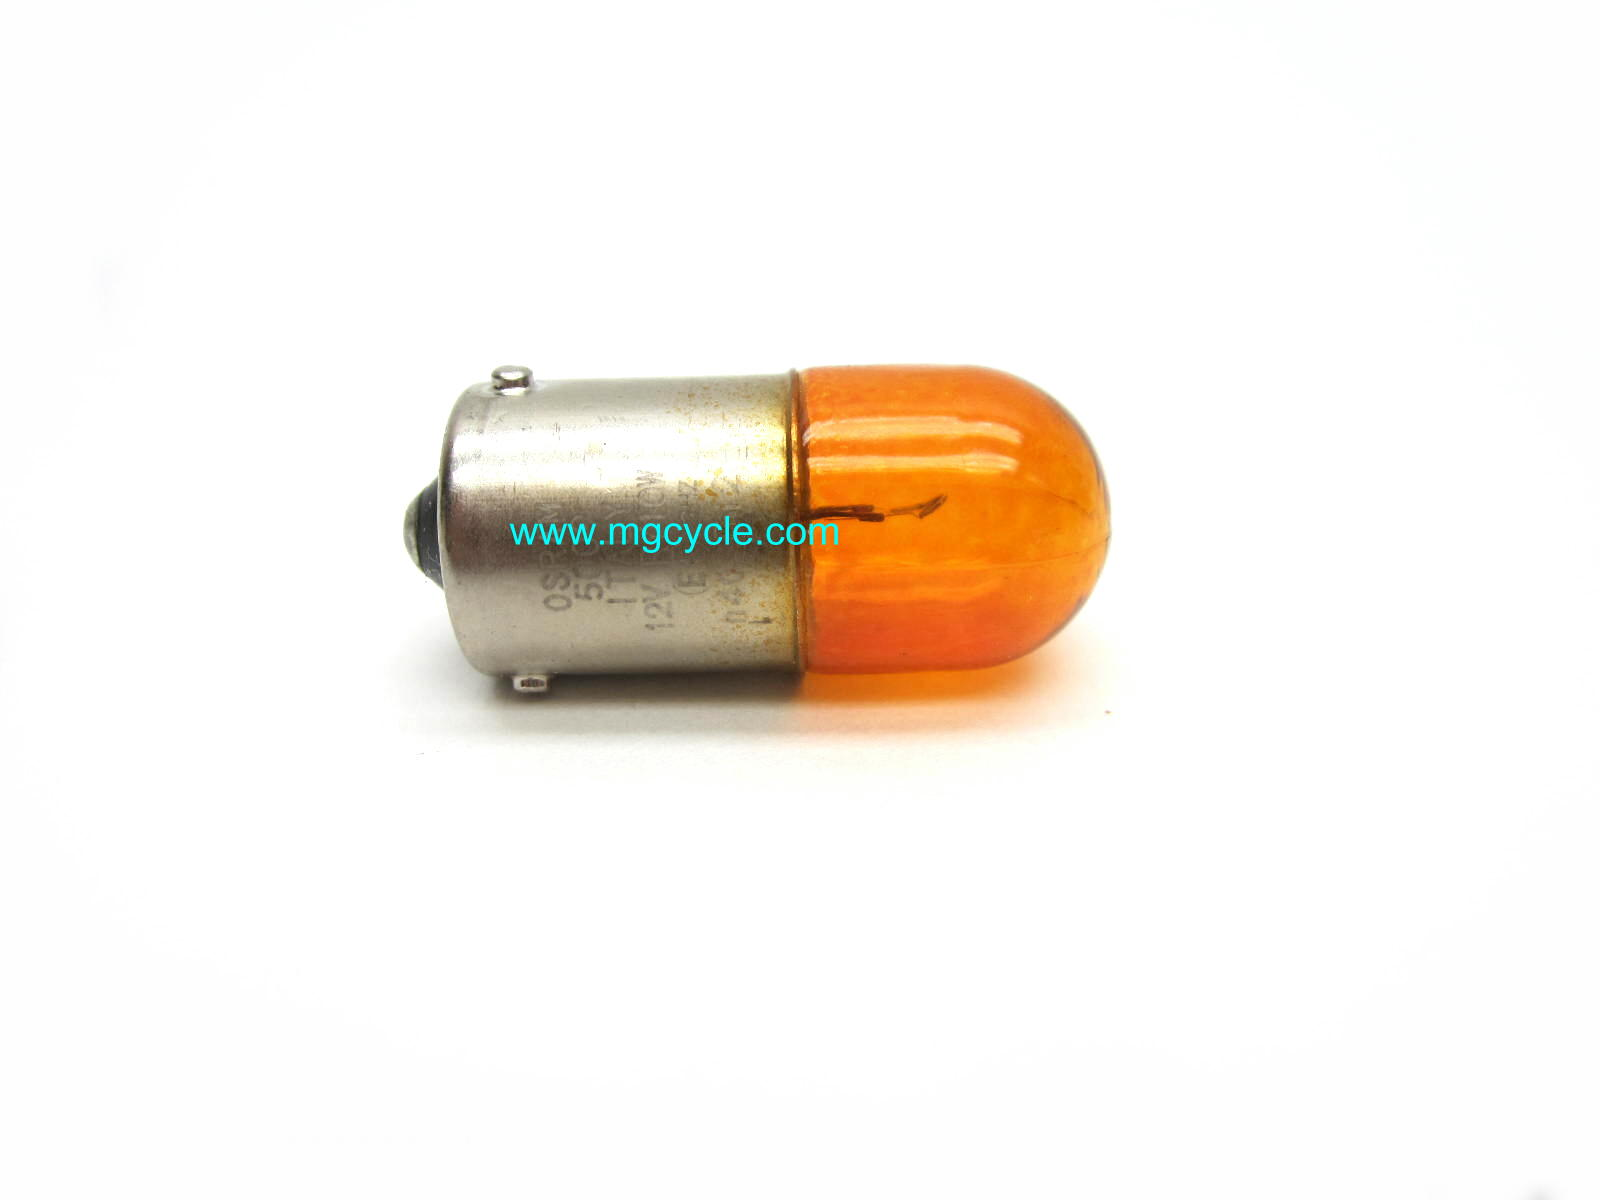 Orange turn signal bulb, 10W Offset pin Euro version 584332